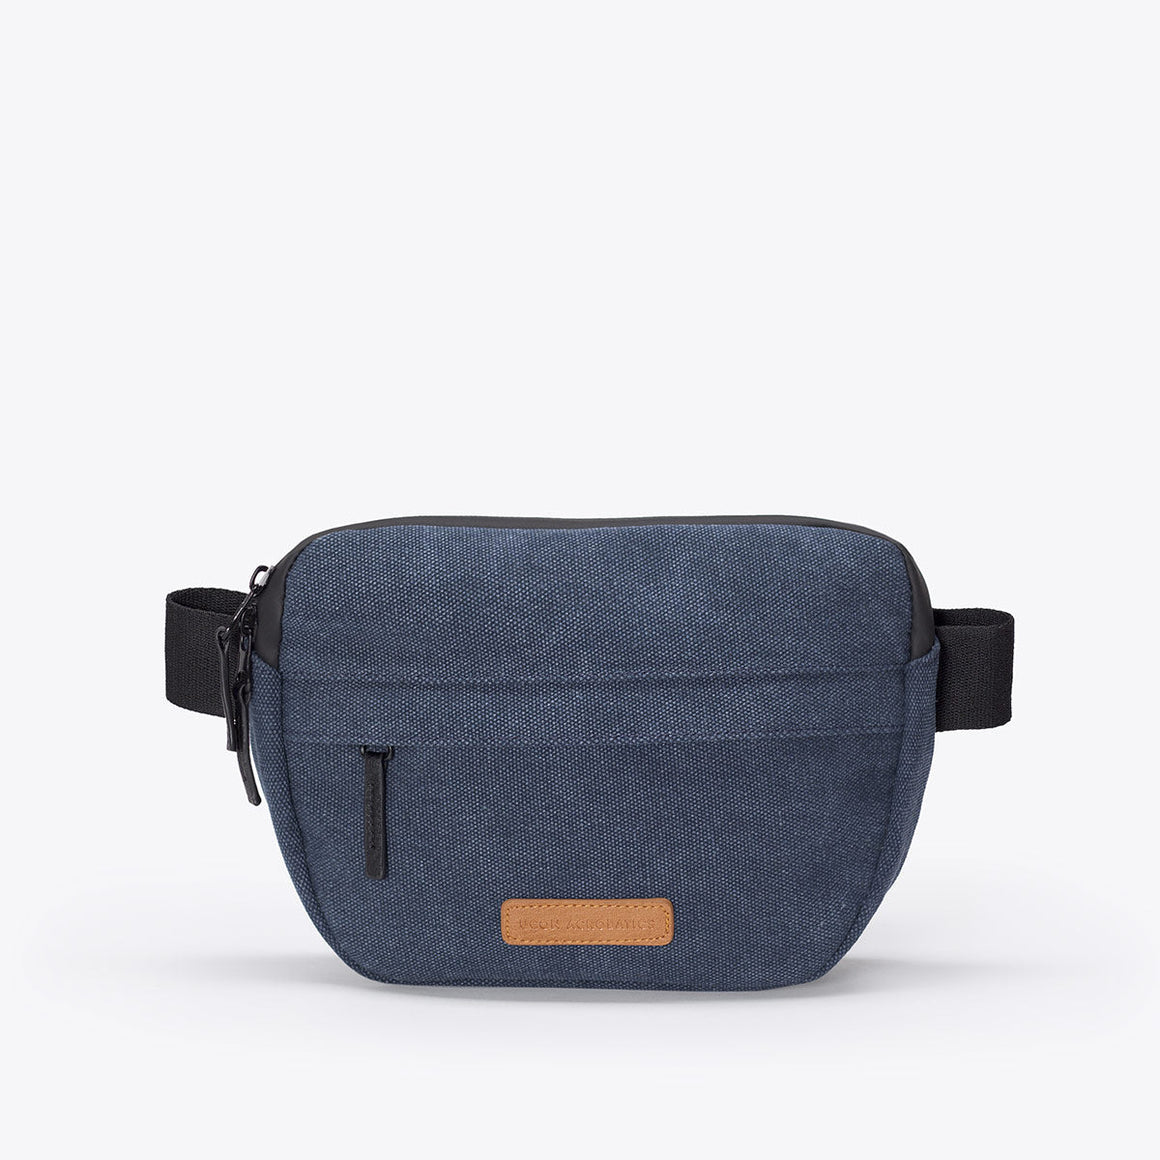 Ucon Acrobatics • Jacob Bag • Original Series (dark navy)